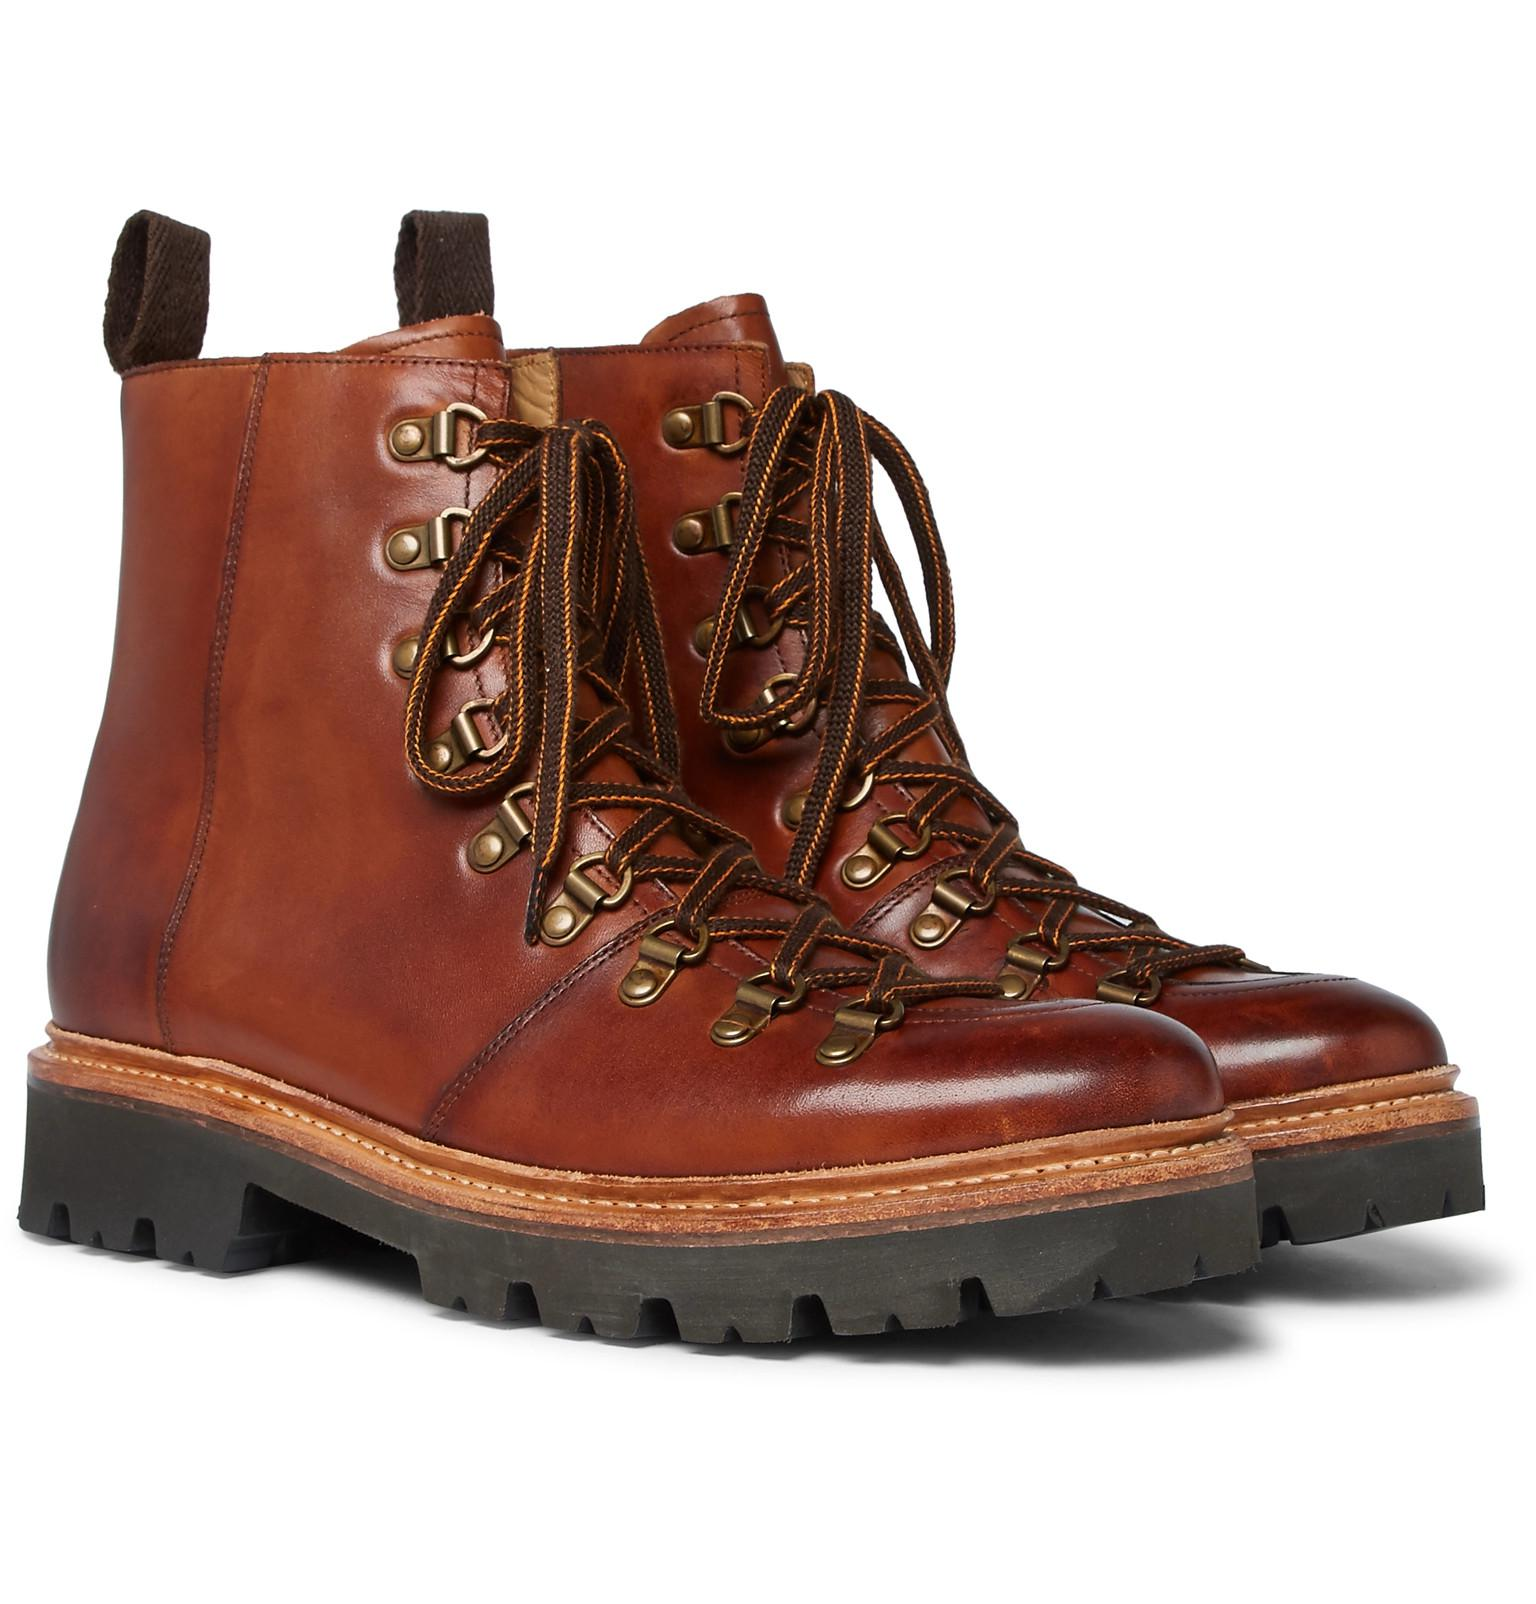 e631eba44d1 Lyst - Grenson Brady Polished-leather Boots in Brown for Men